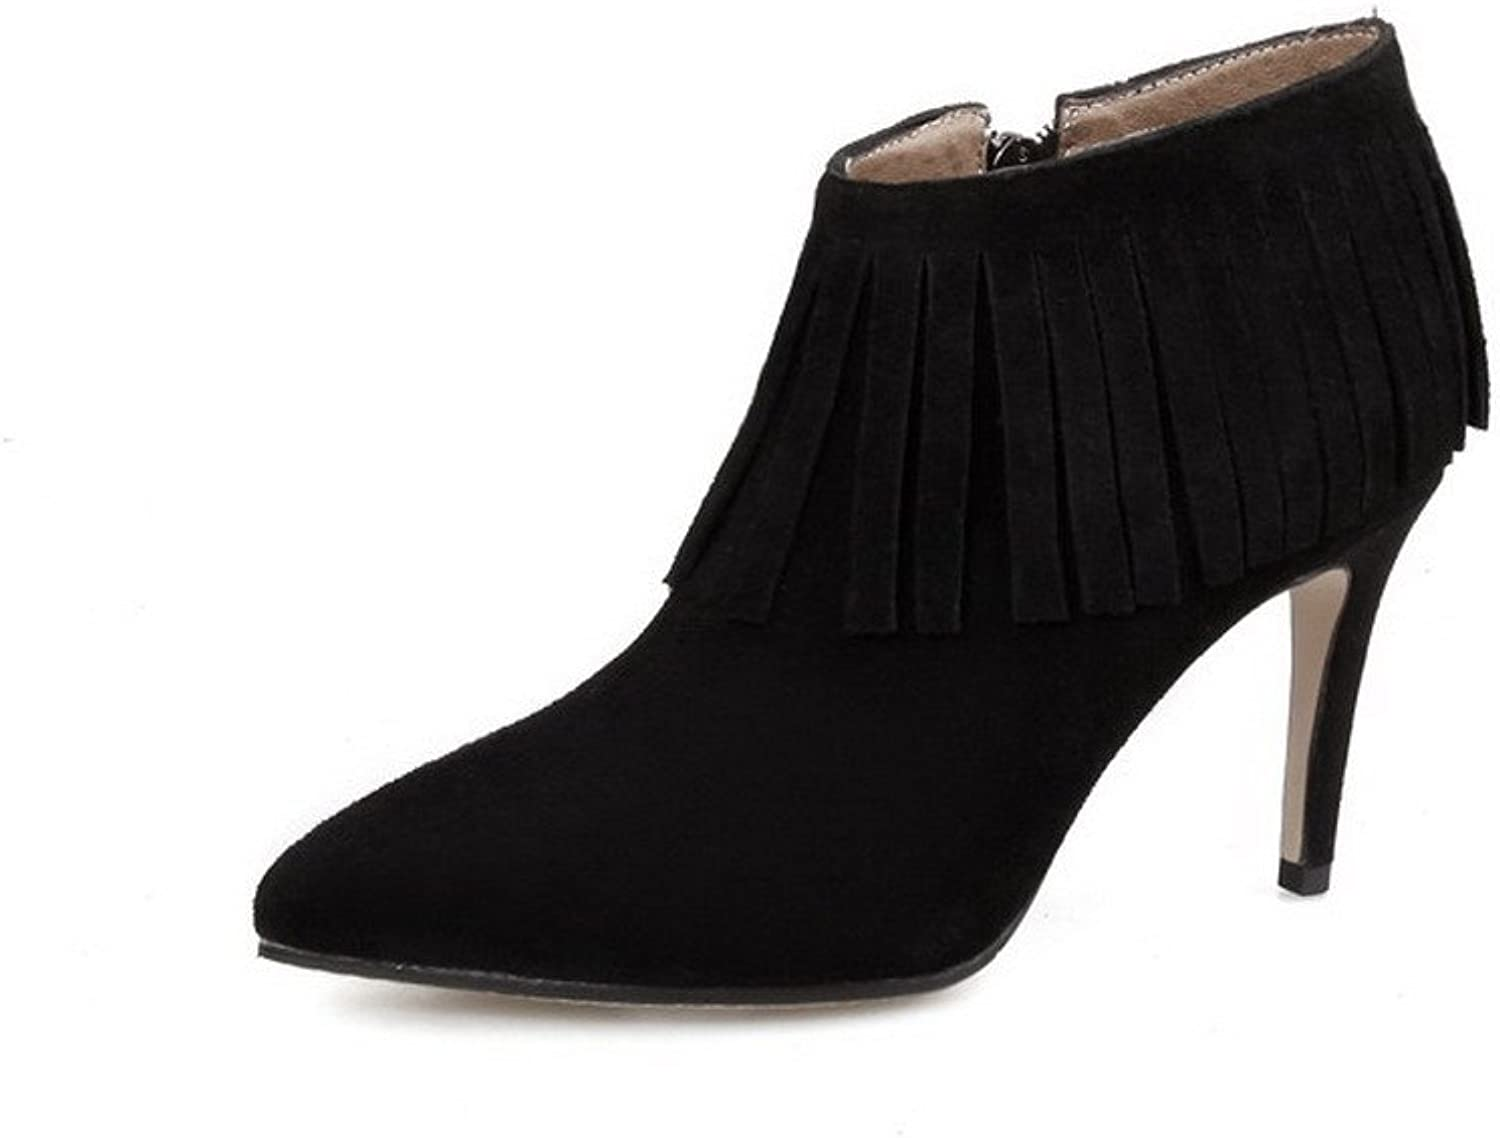 WeenFashion Women's Cow Imitated Suede High-Heels Pointed-Toe Boots with Slipping Sole and Stiletto